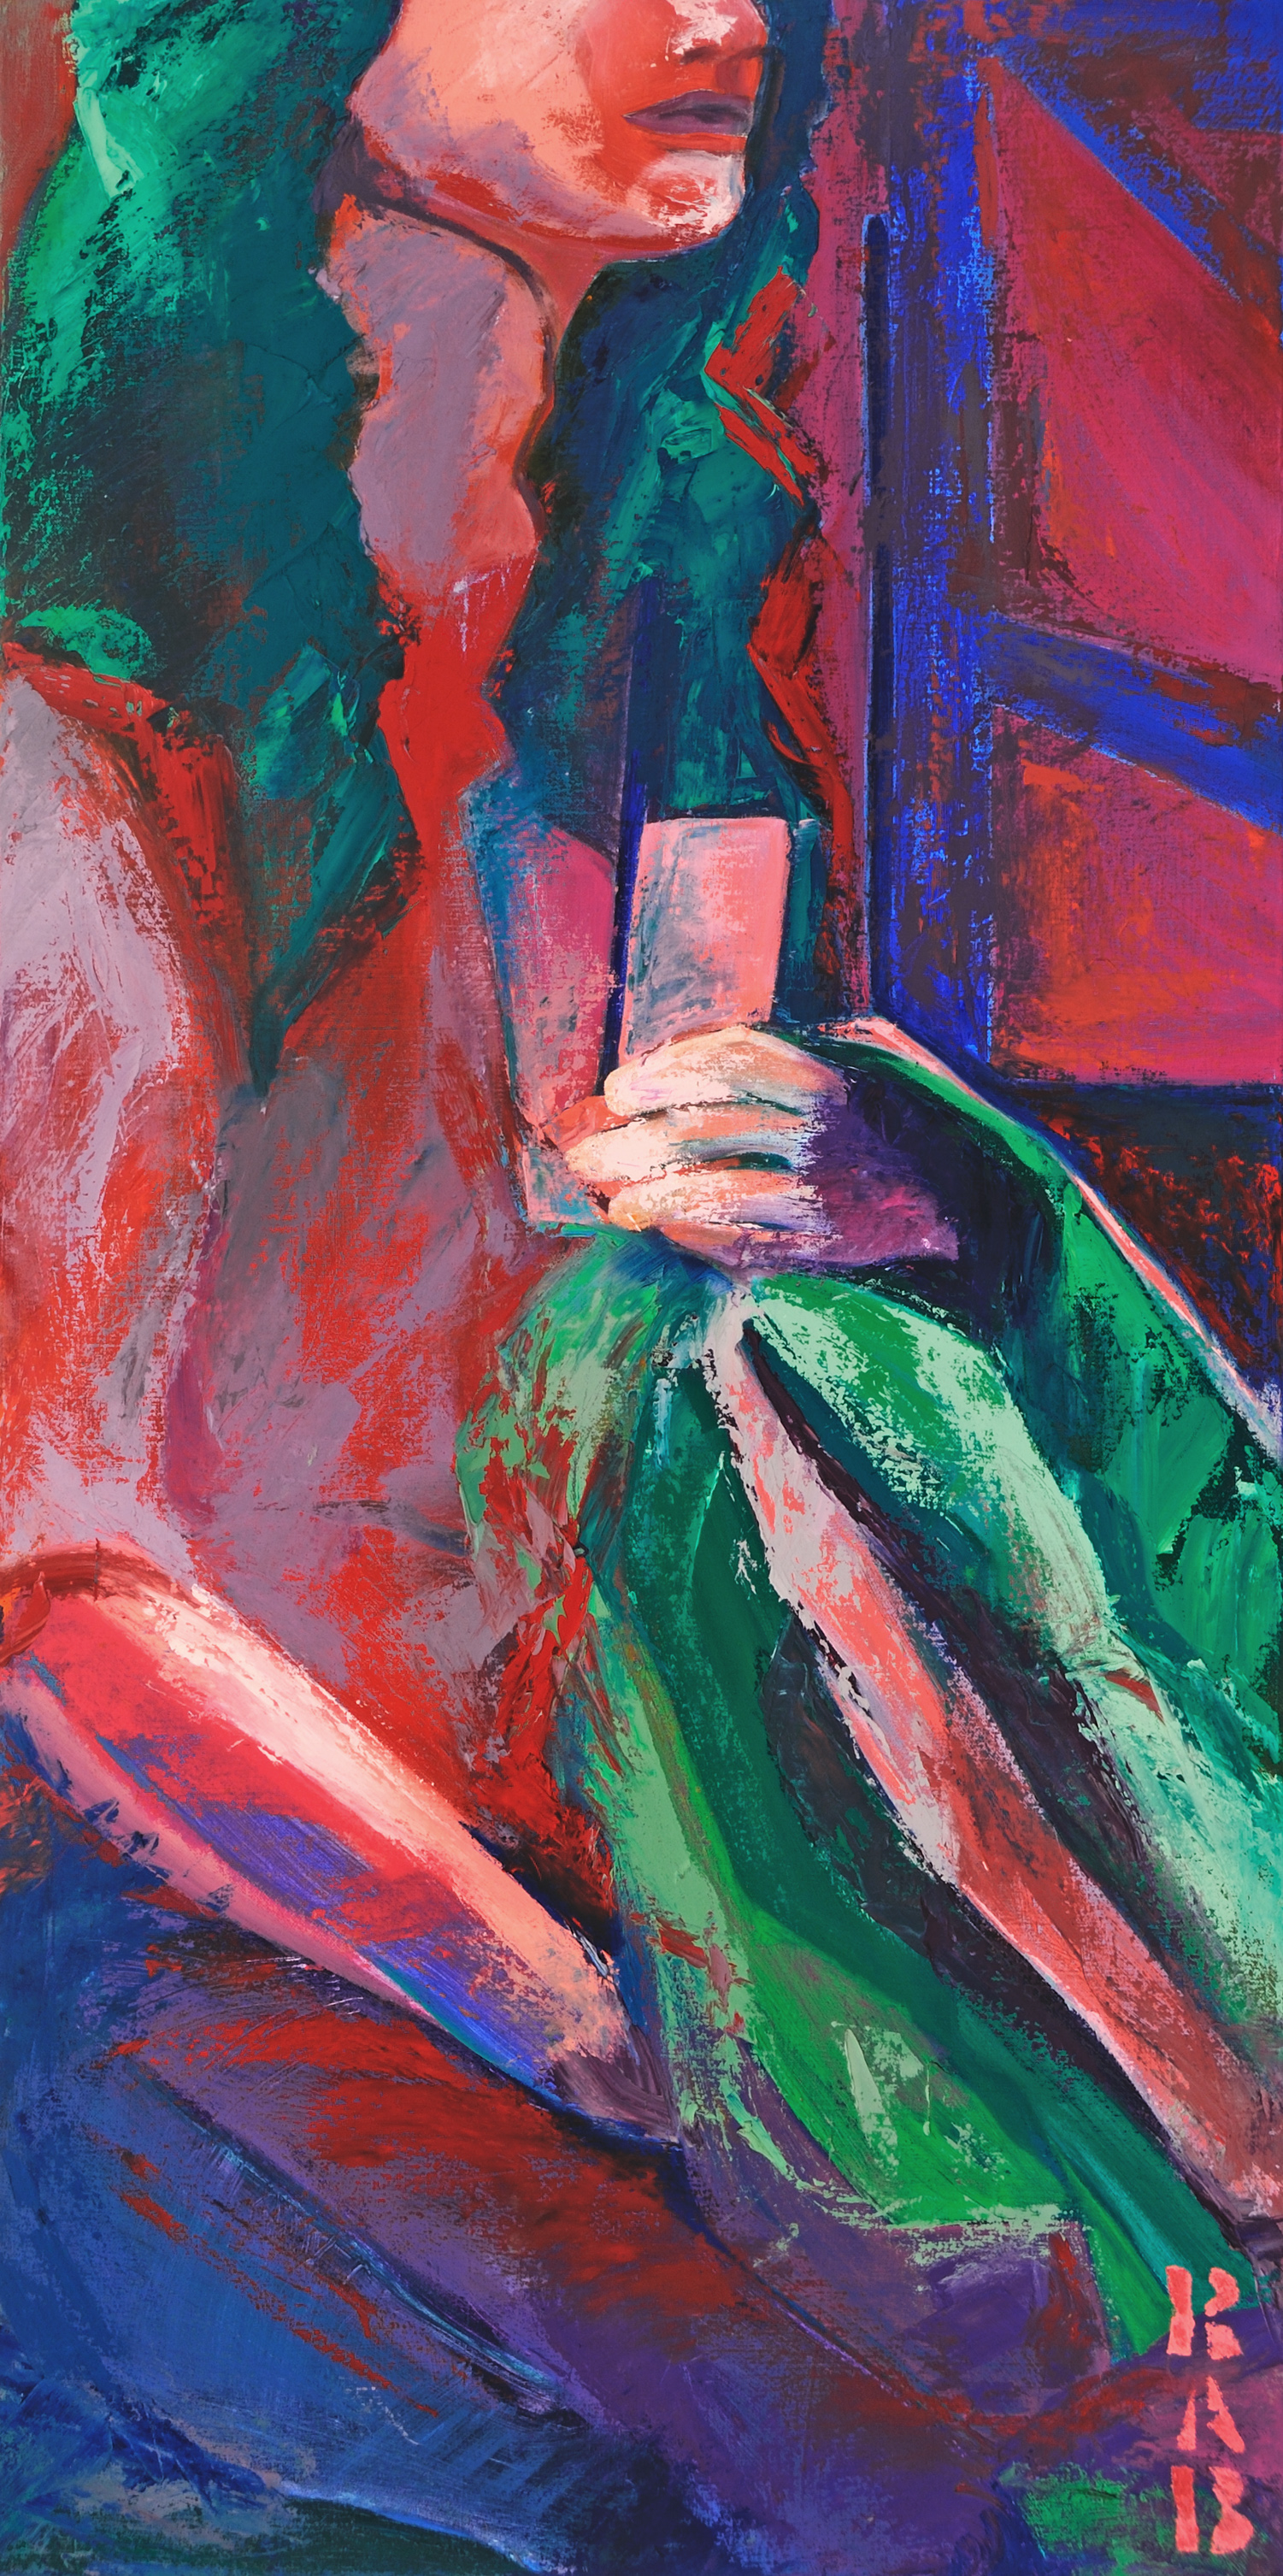 girl with iPod and starbucks, portraiture, r.a.b., rachael bohlander, expressionist painting, oil painting, contemporary art, social abstraction, expressionism, abstractionism